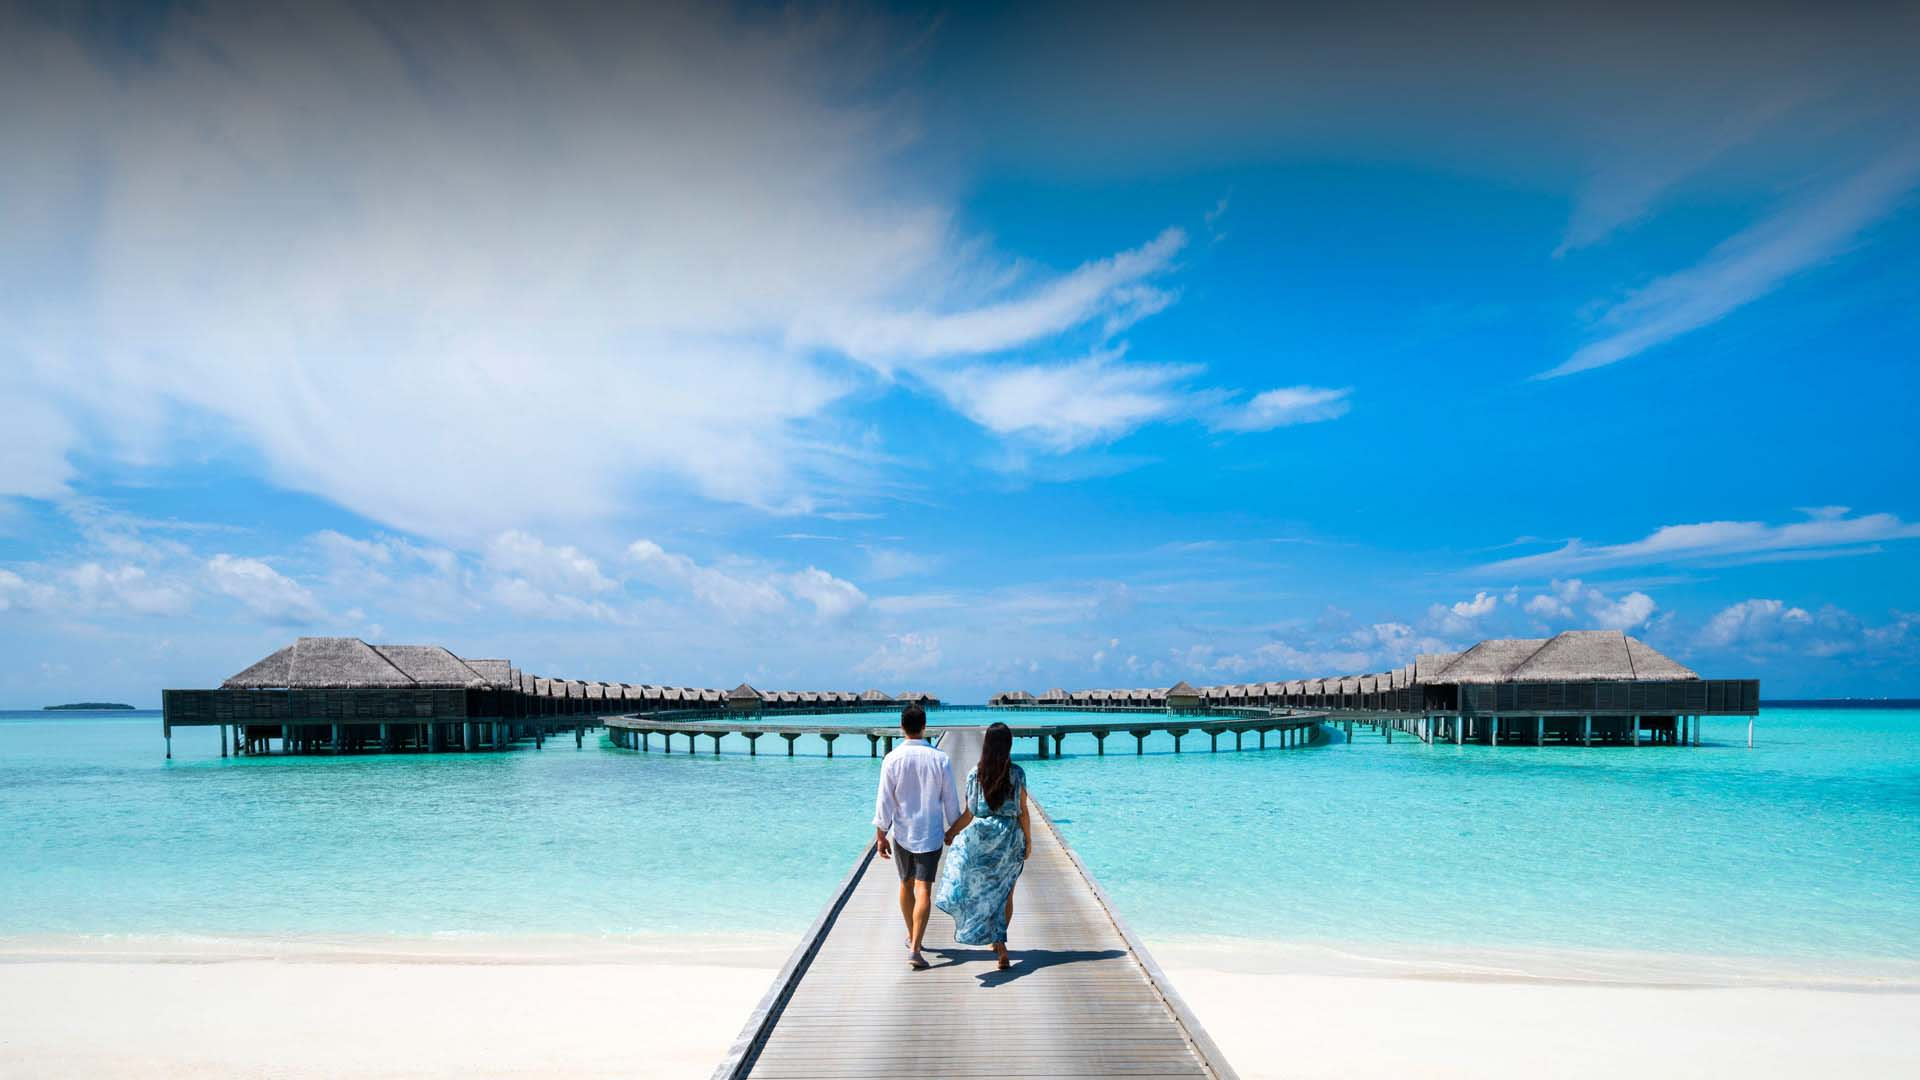 https://assets.anantara.com/image/upload/q_auto/media/minor/anantara/images/anantara-kihavah-maldives-villas/the-resort/desktop-banner/anantara_kihavah_header_1920x1080.jpg